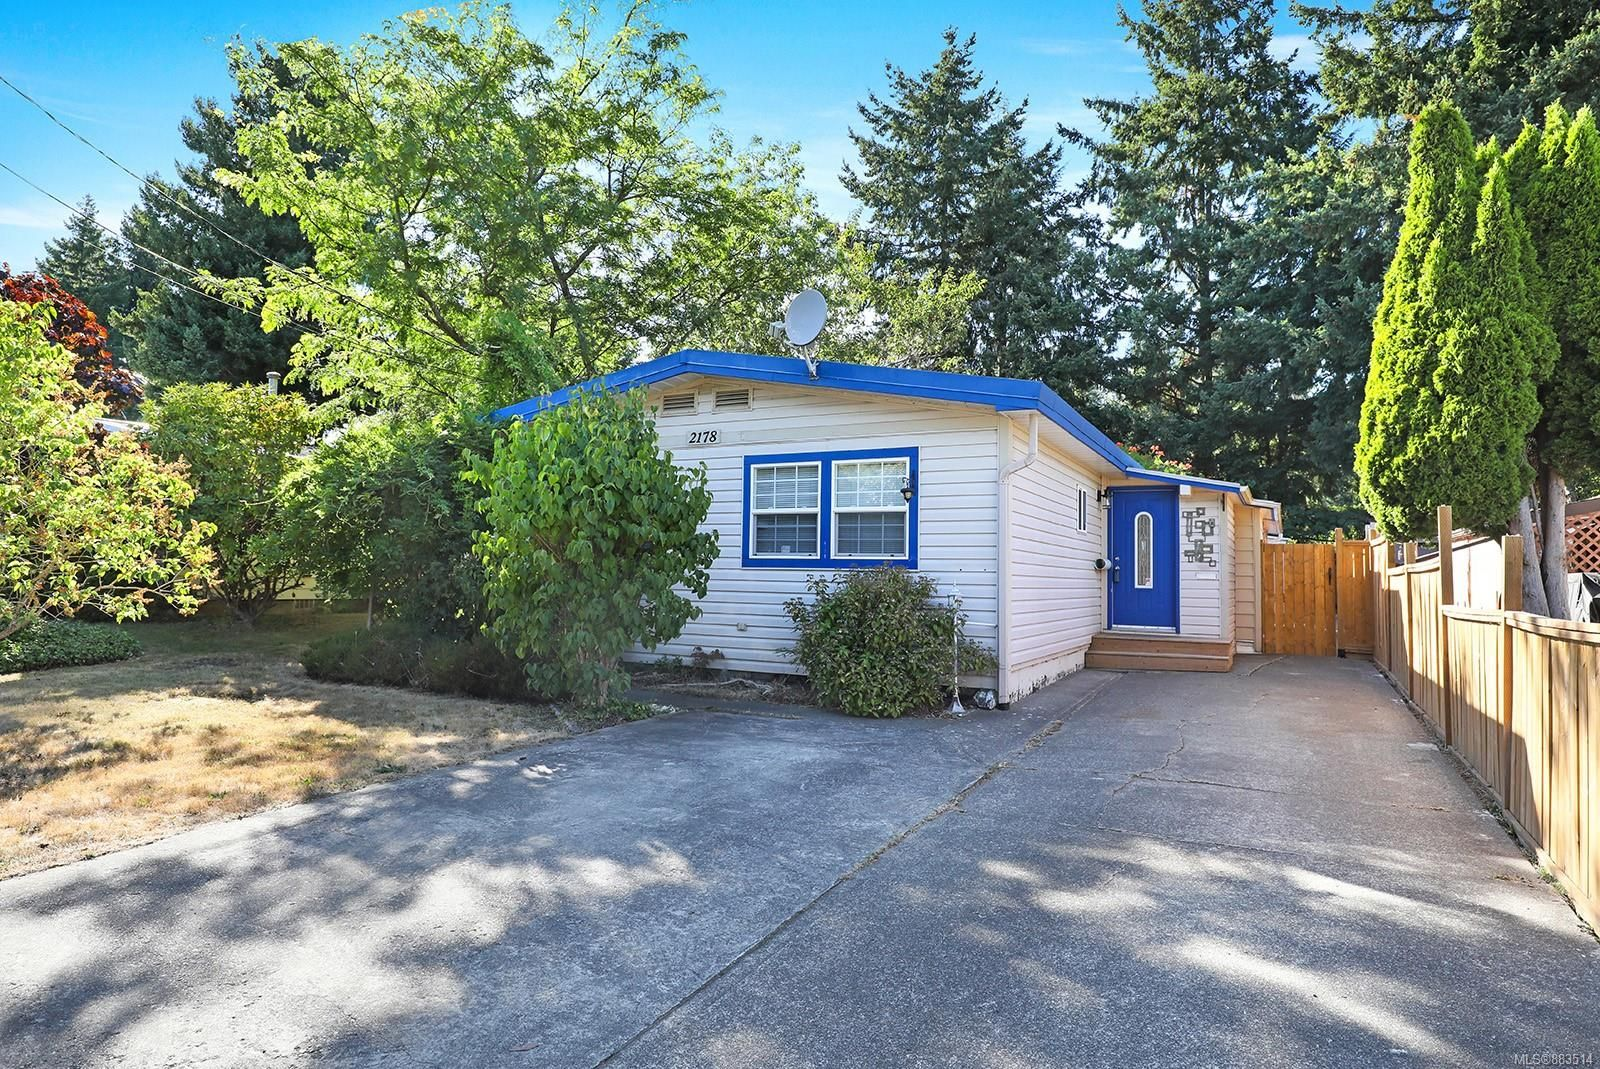 Main Photo: 2178 E 4th St in : CV Courtenay East House for sale (Comox Valley)  : MLS®# 883514